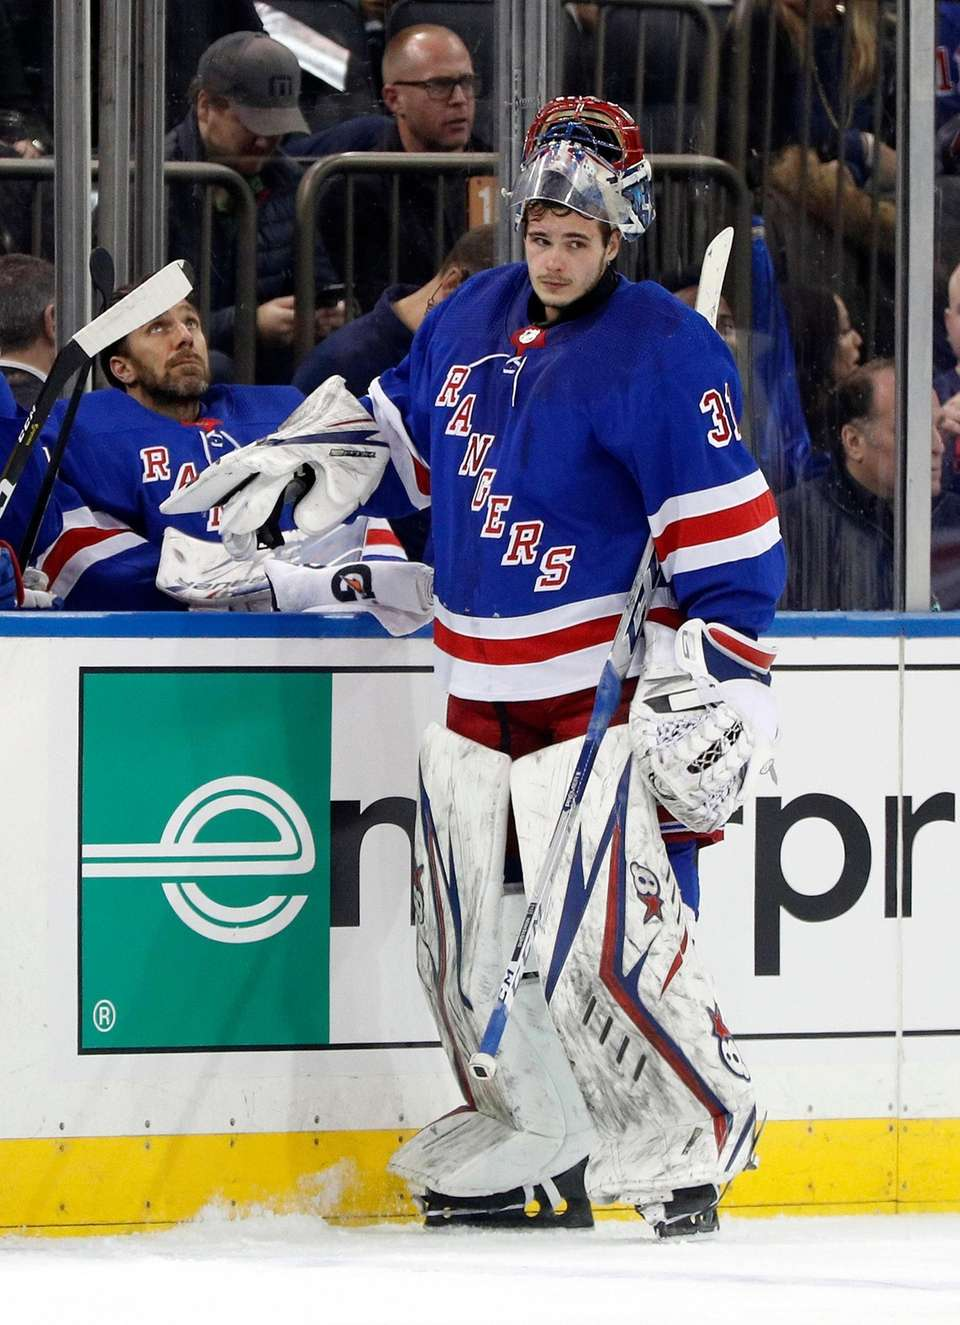 Igor Shesterkin #31 and Henrik Lundqvist #30 of